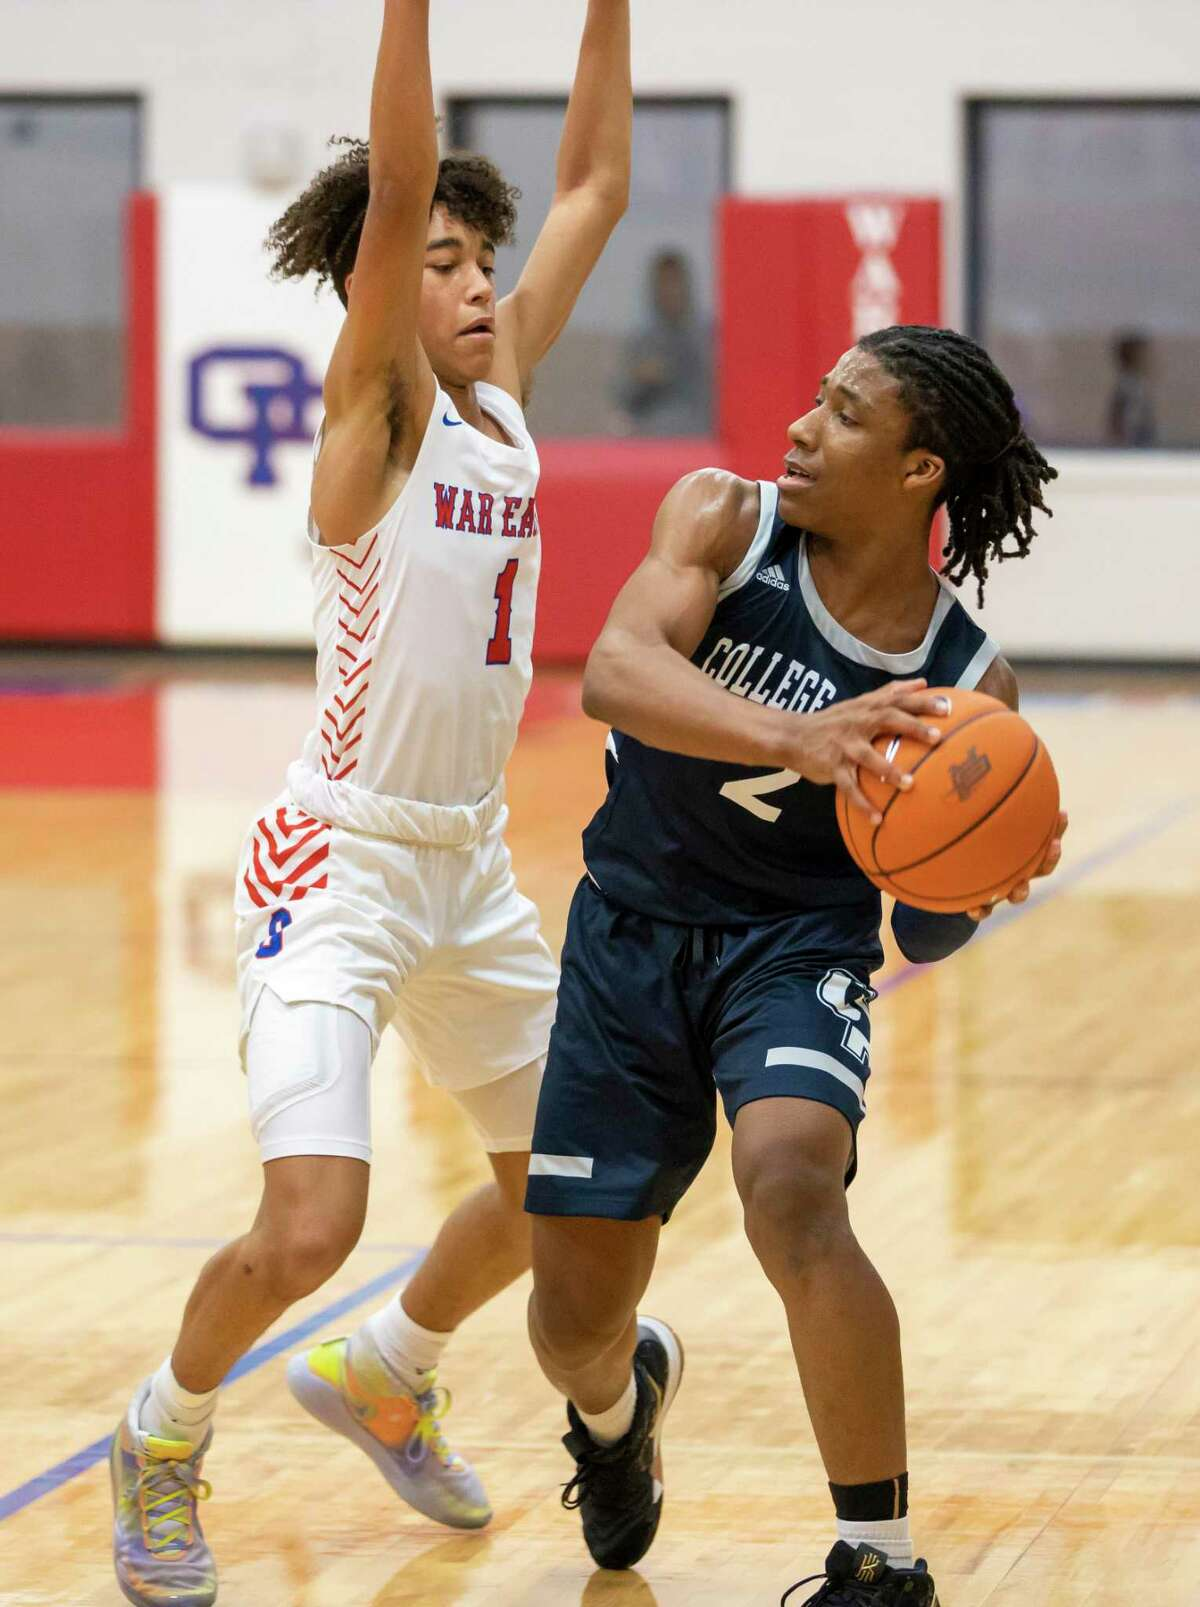 Oak Ridge point guard Ian Egele (1) returns after earning second team all-district recognition in 2019-20.